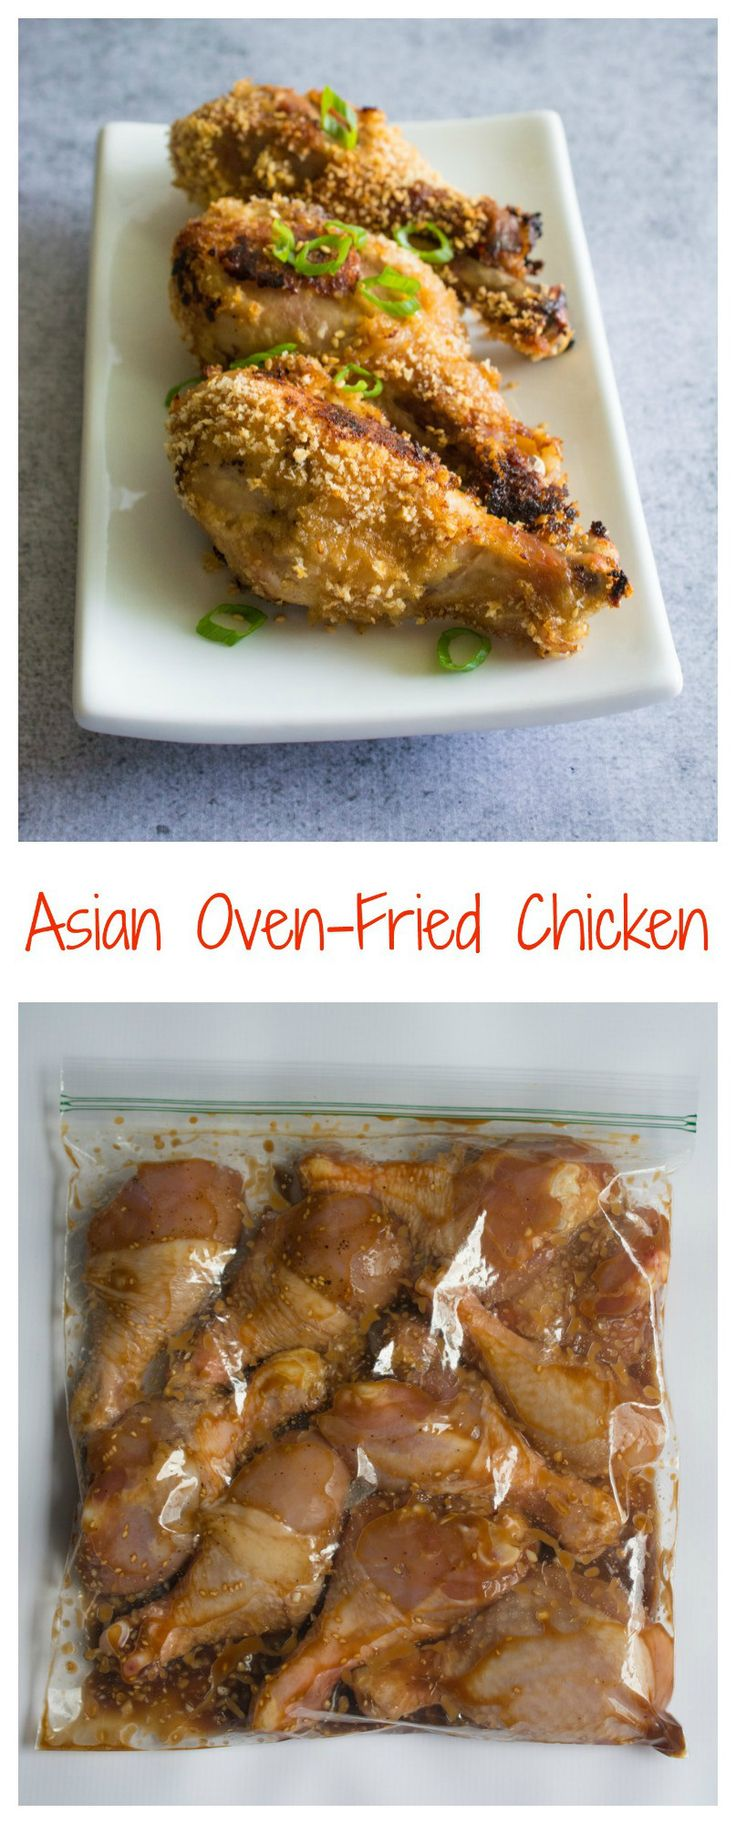 This Asian Oven-Fried Chicken is crazy delicious. The marinade gives the meat such incredible flavor, and the panko breadcrumbs gives the skin such great crunch. Best of all, since it's cooked in the oven and not deep-fried in oil, it's really healthy!